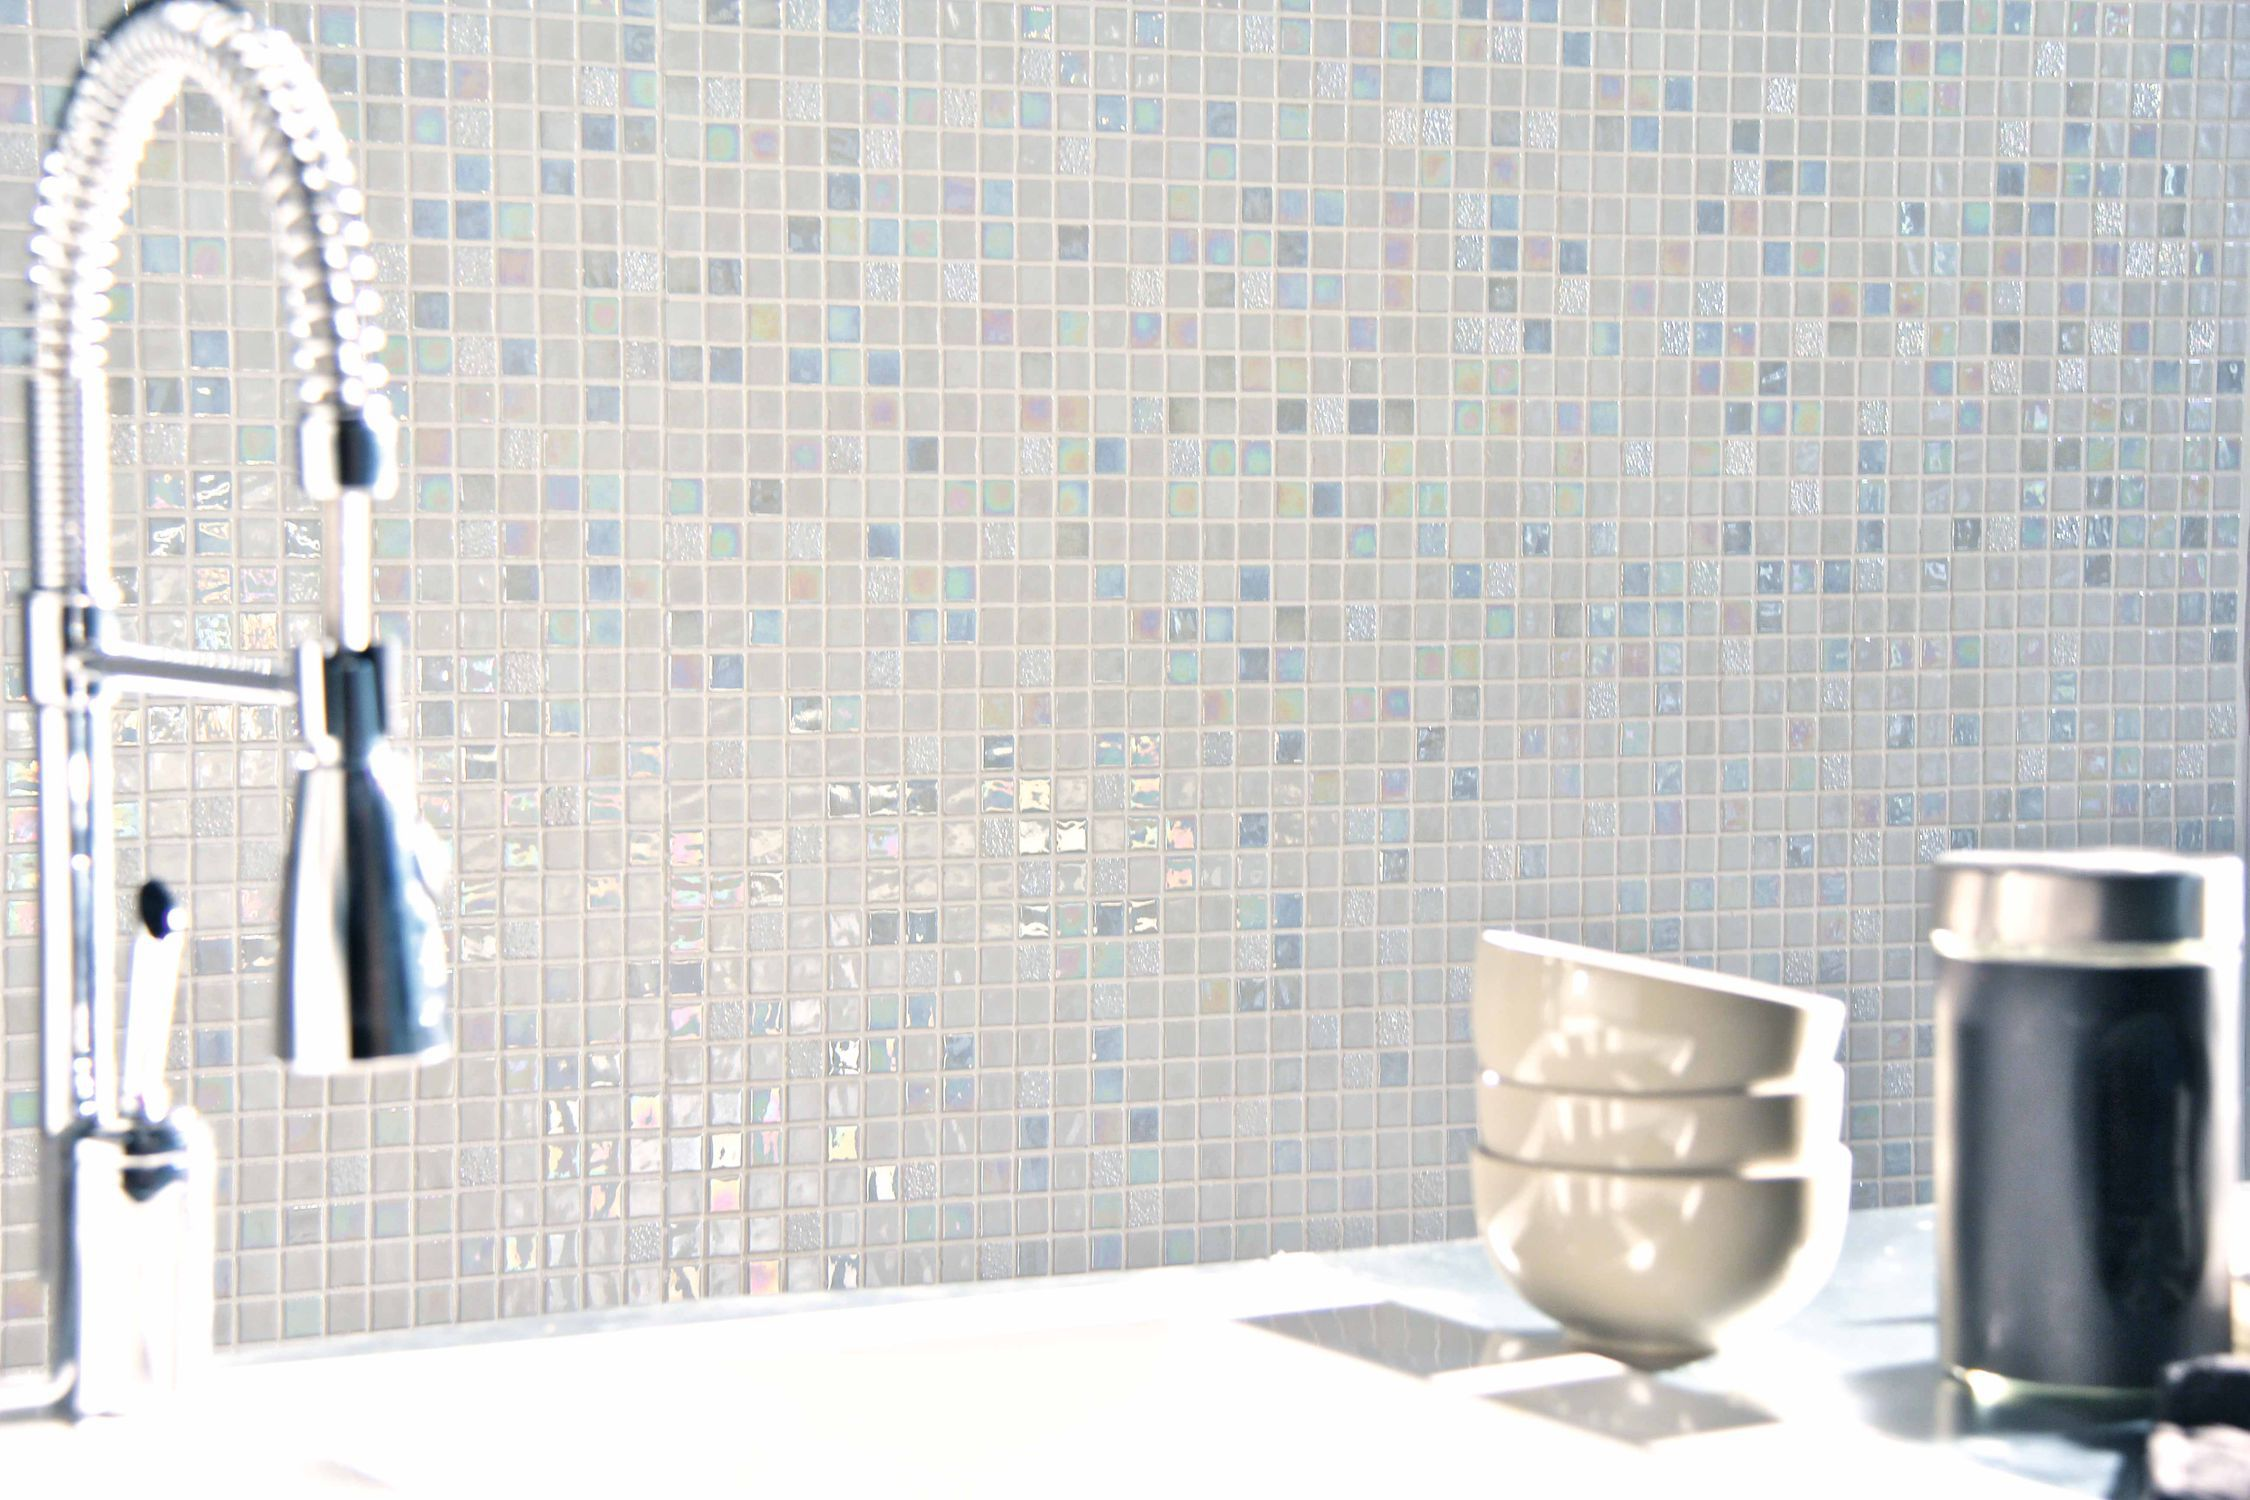 Bathroom mosaic tile / wall / glass / white - SUNDANCE - Mosavit